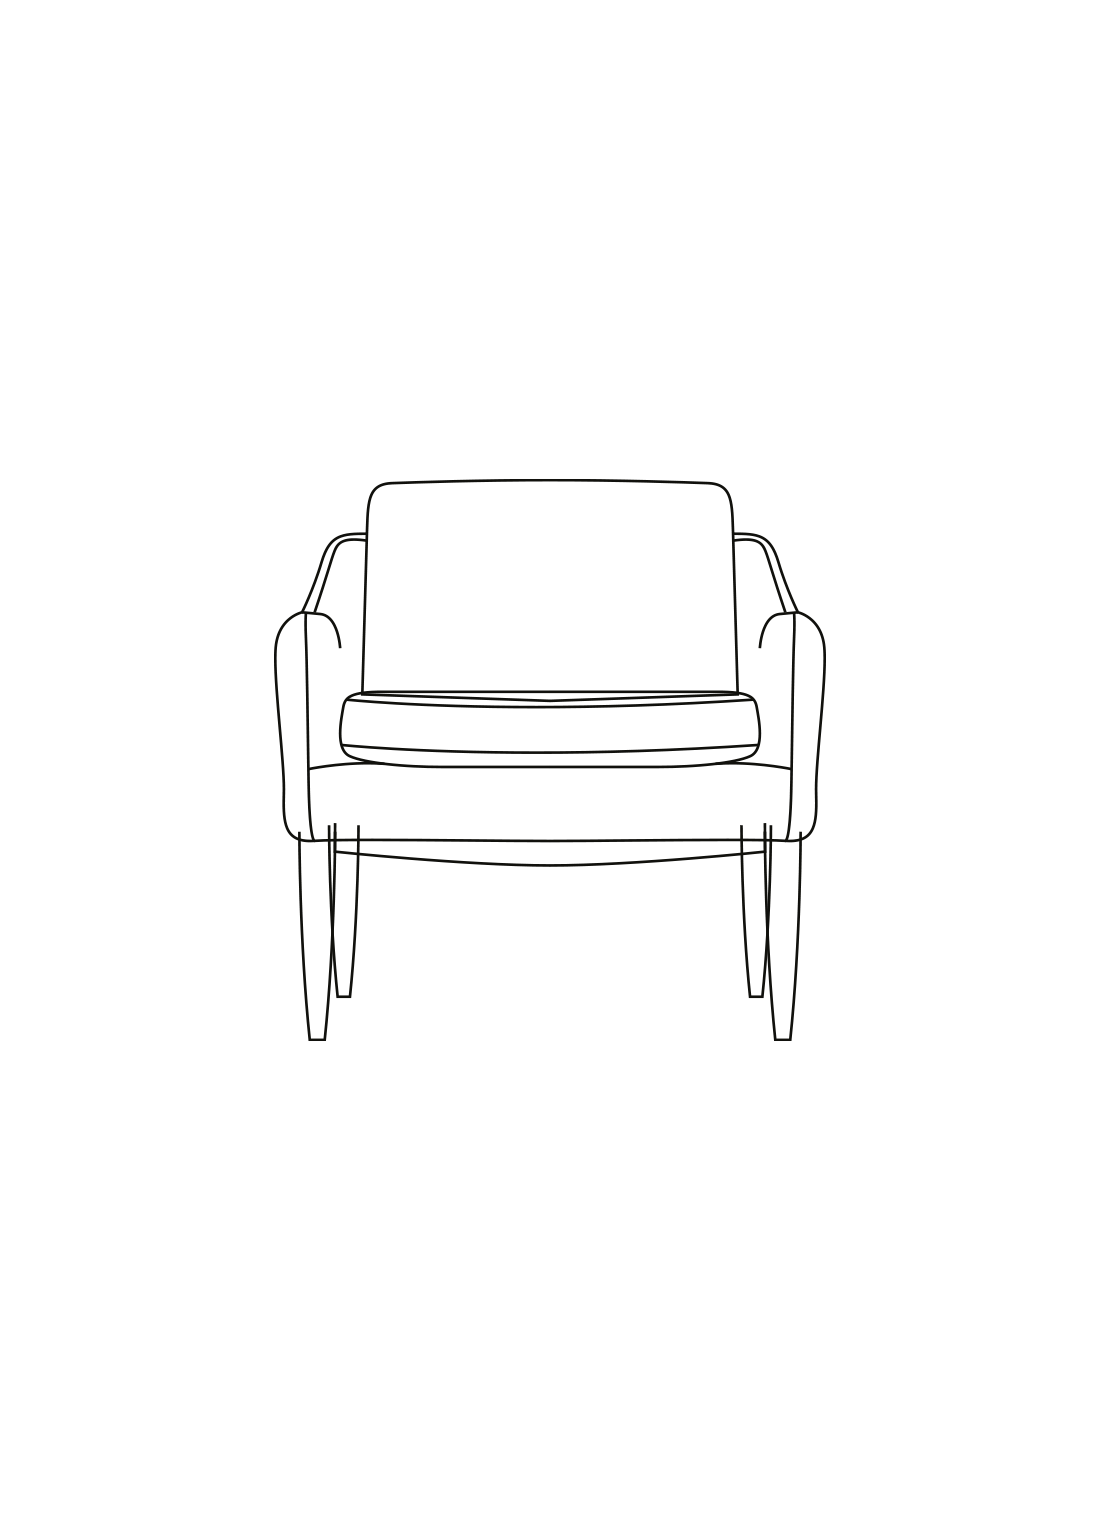 Mr. Olsen Lounge stol illustration